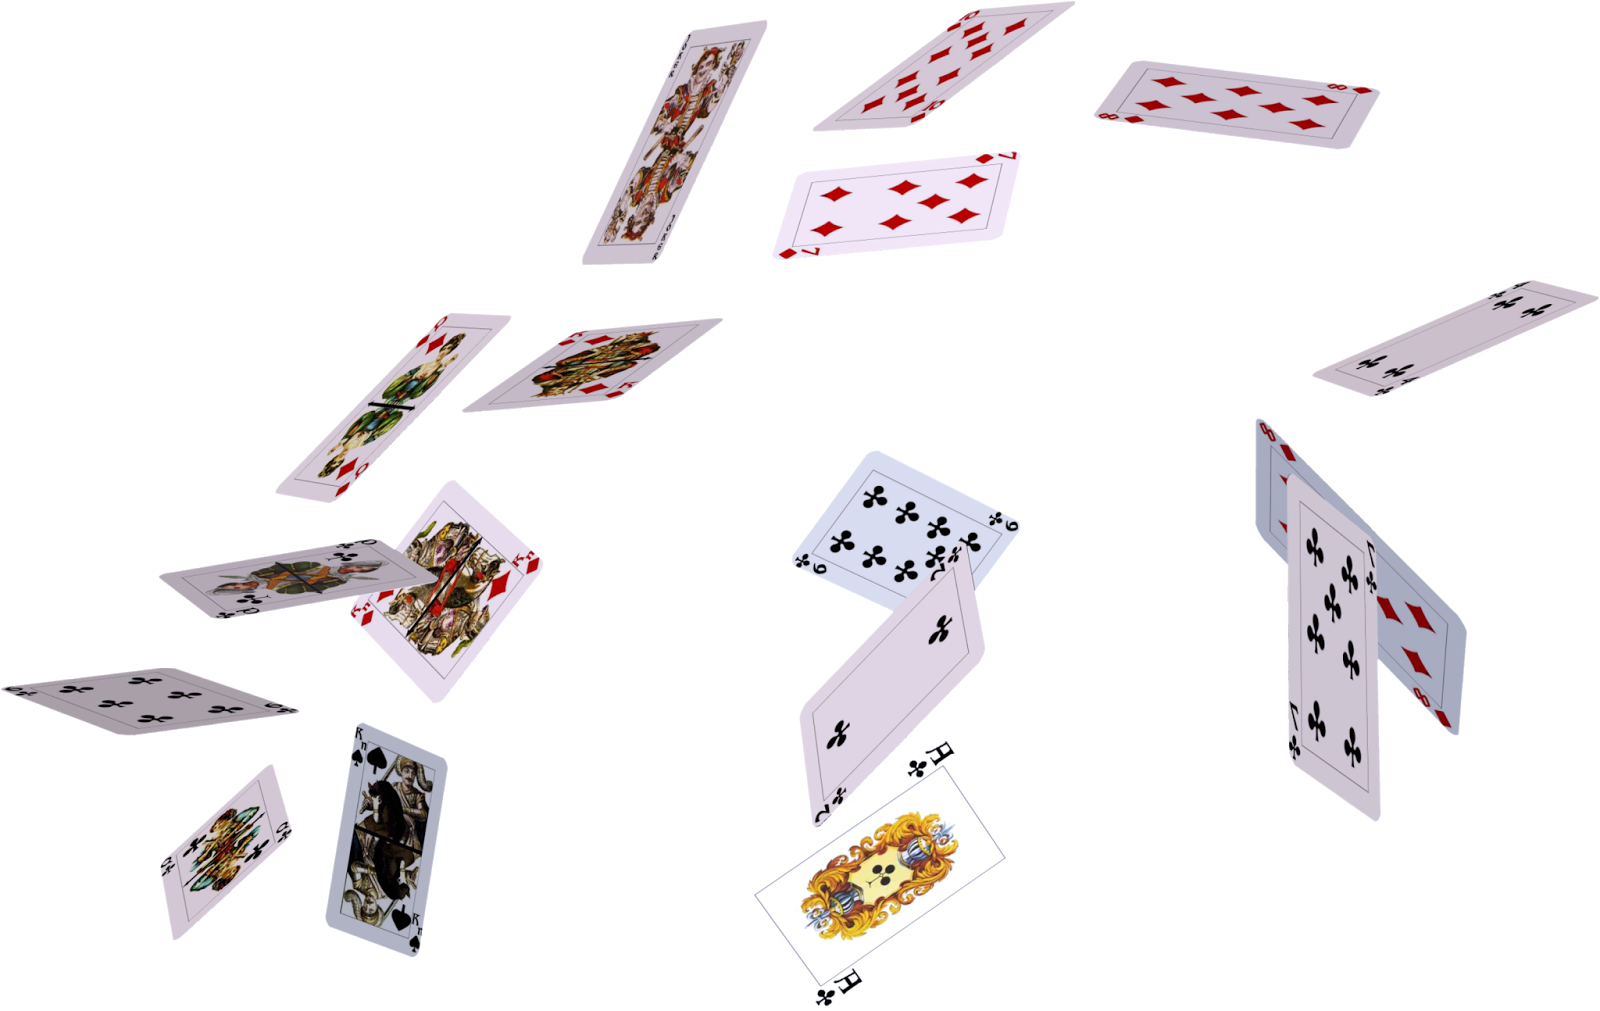 Card images png. Cards free download image